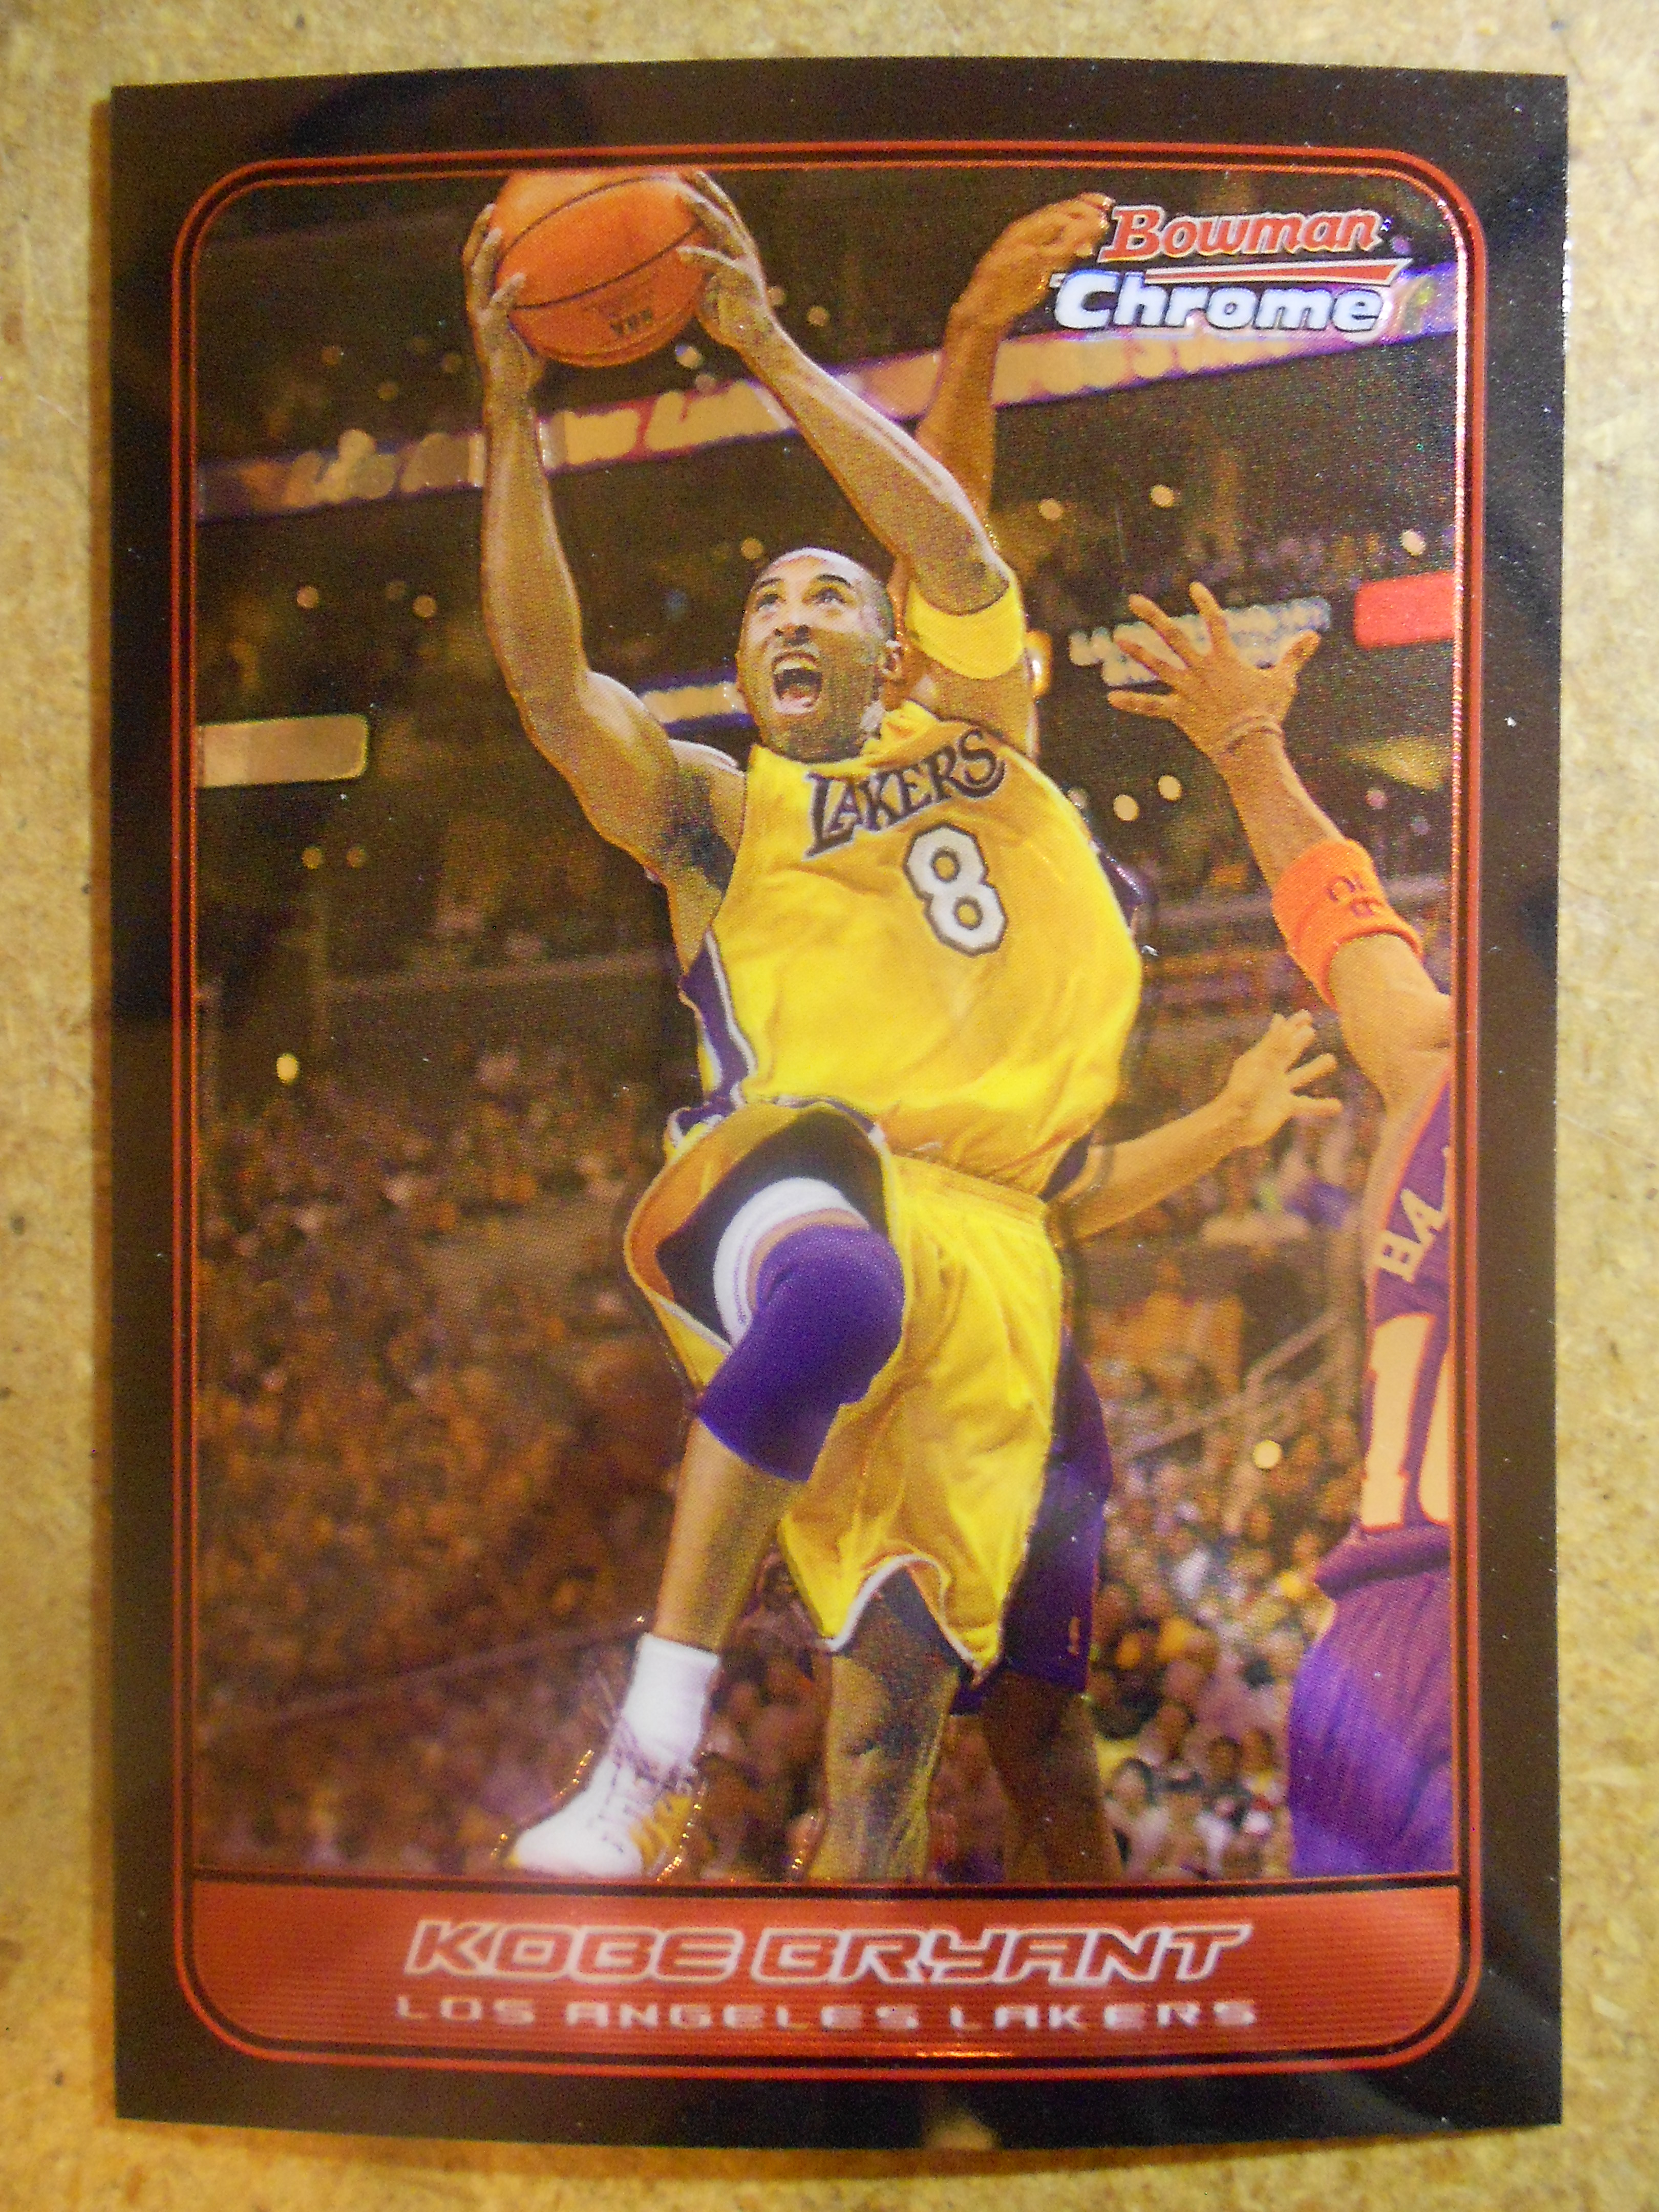 2006-07 Bowman Chrome #6 Kobe Bryant